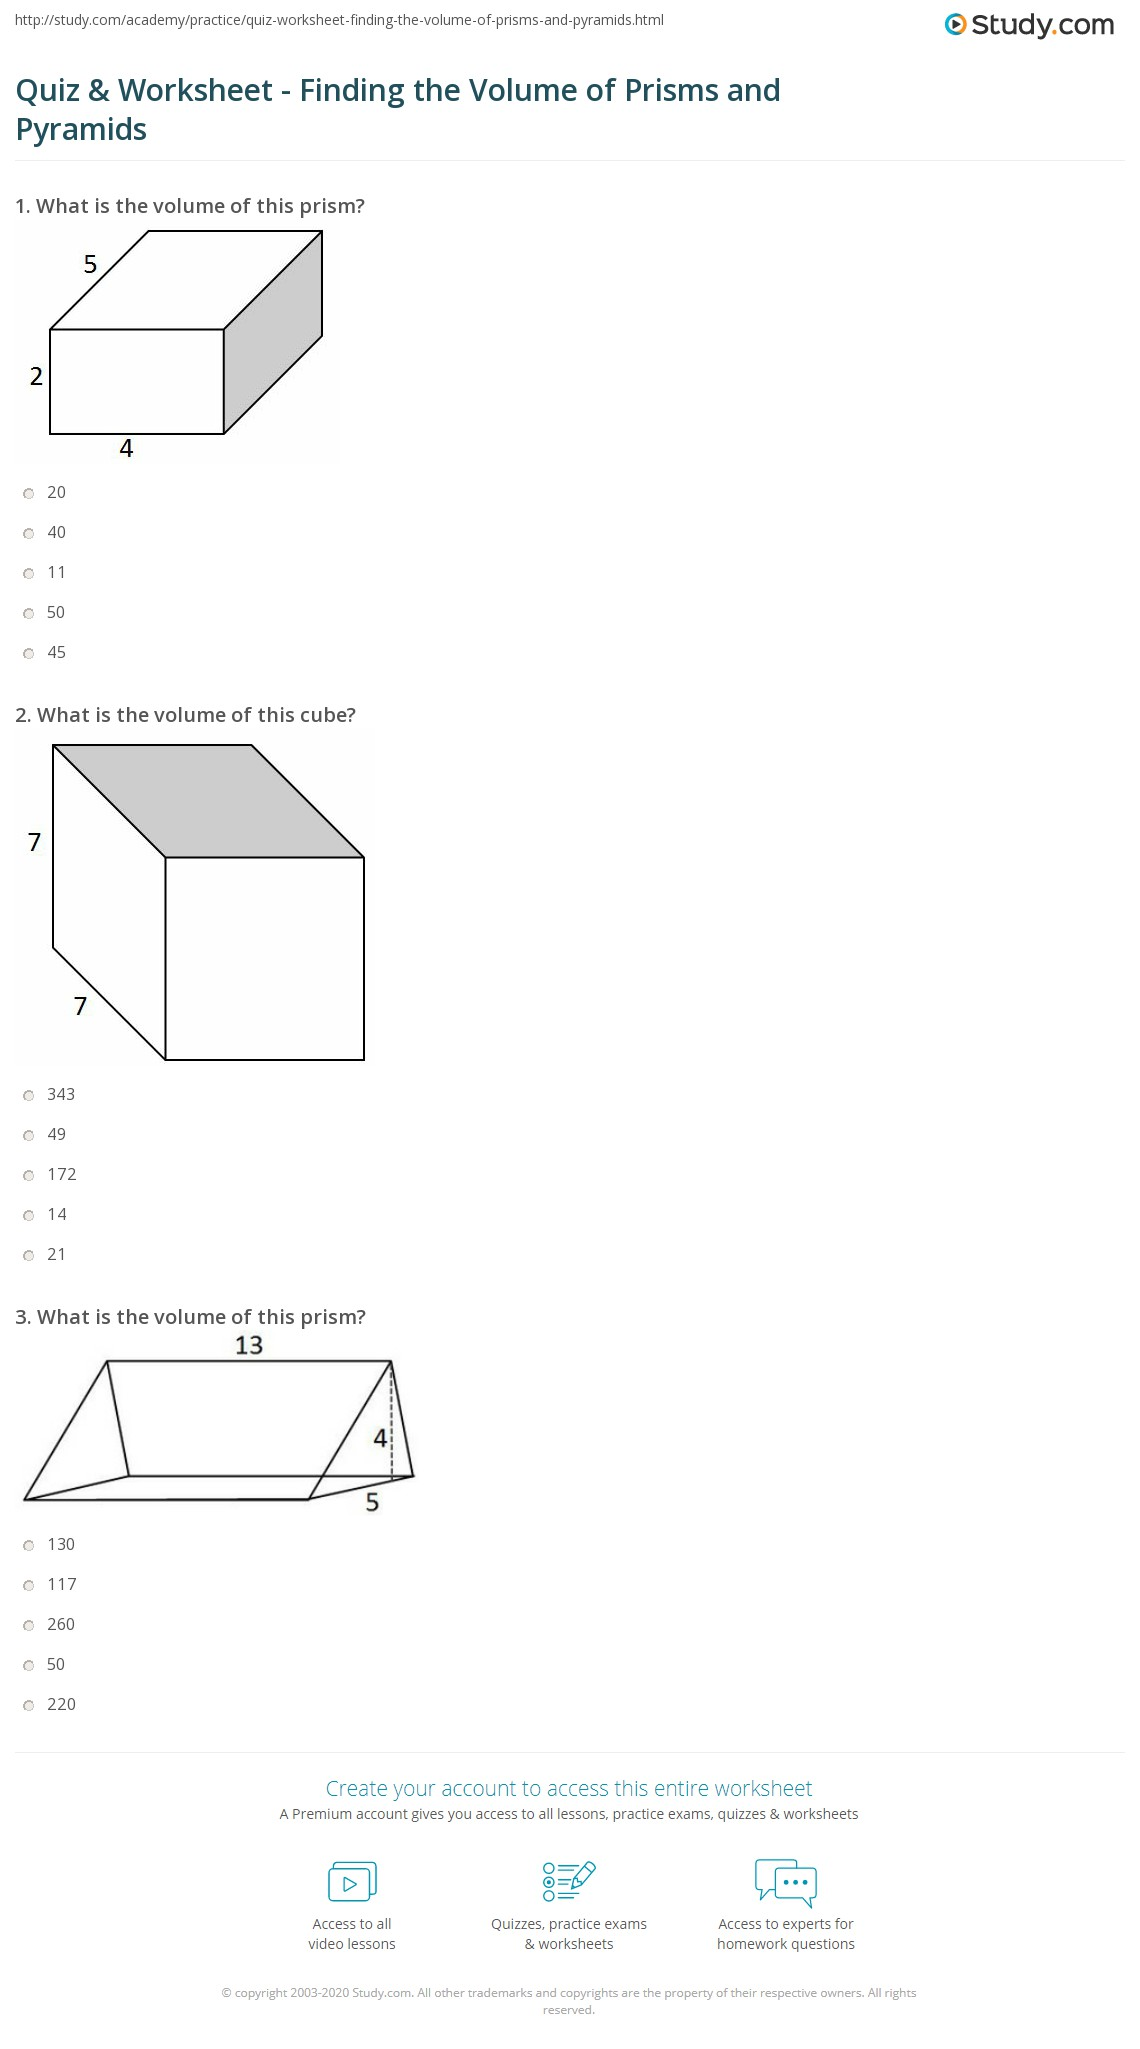 Worksheets Volume Of Prisms Worksheet quiz worksheet finding the volume of prisms and pyramids print worksheet